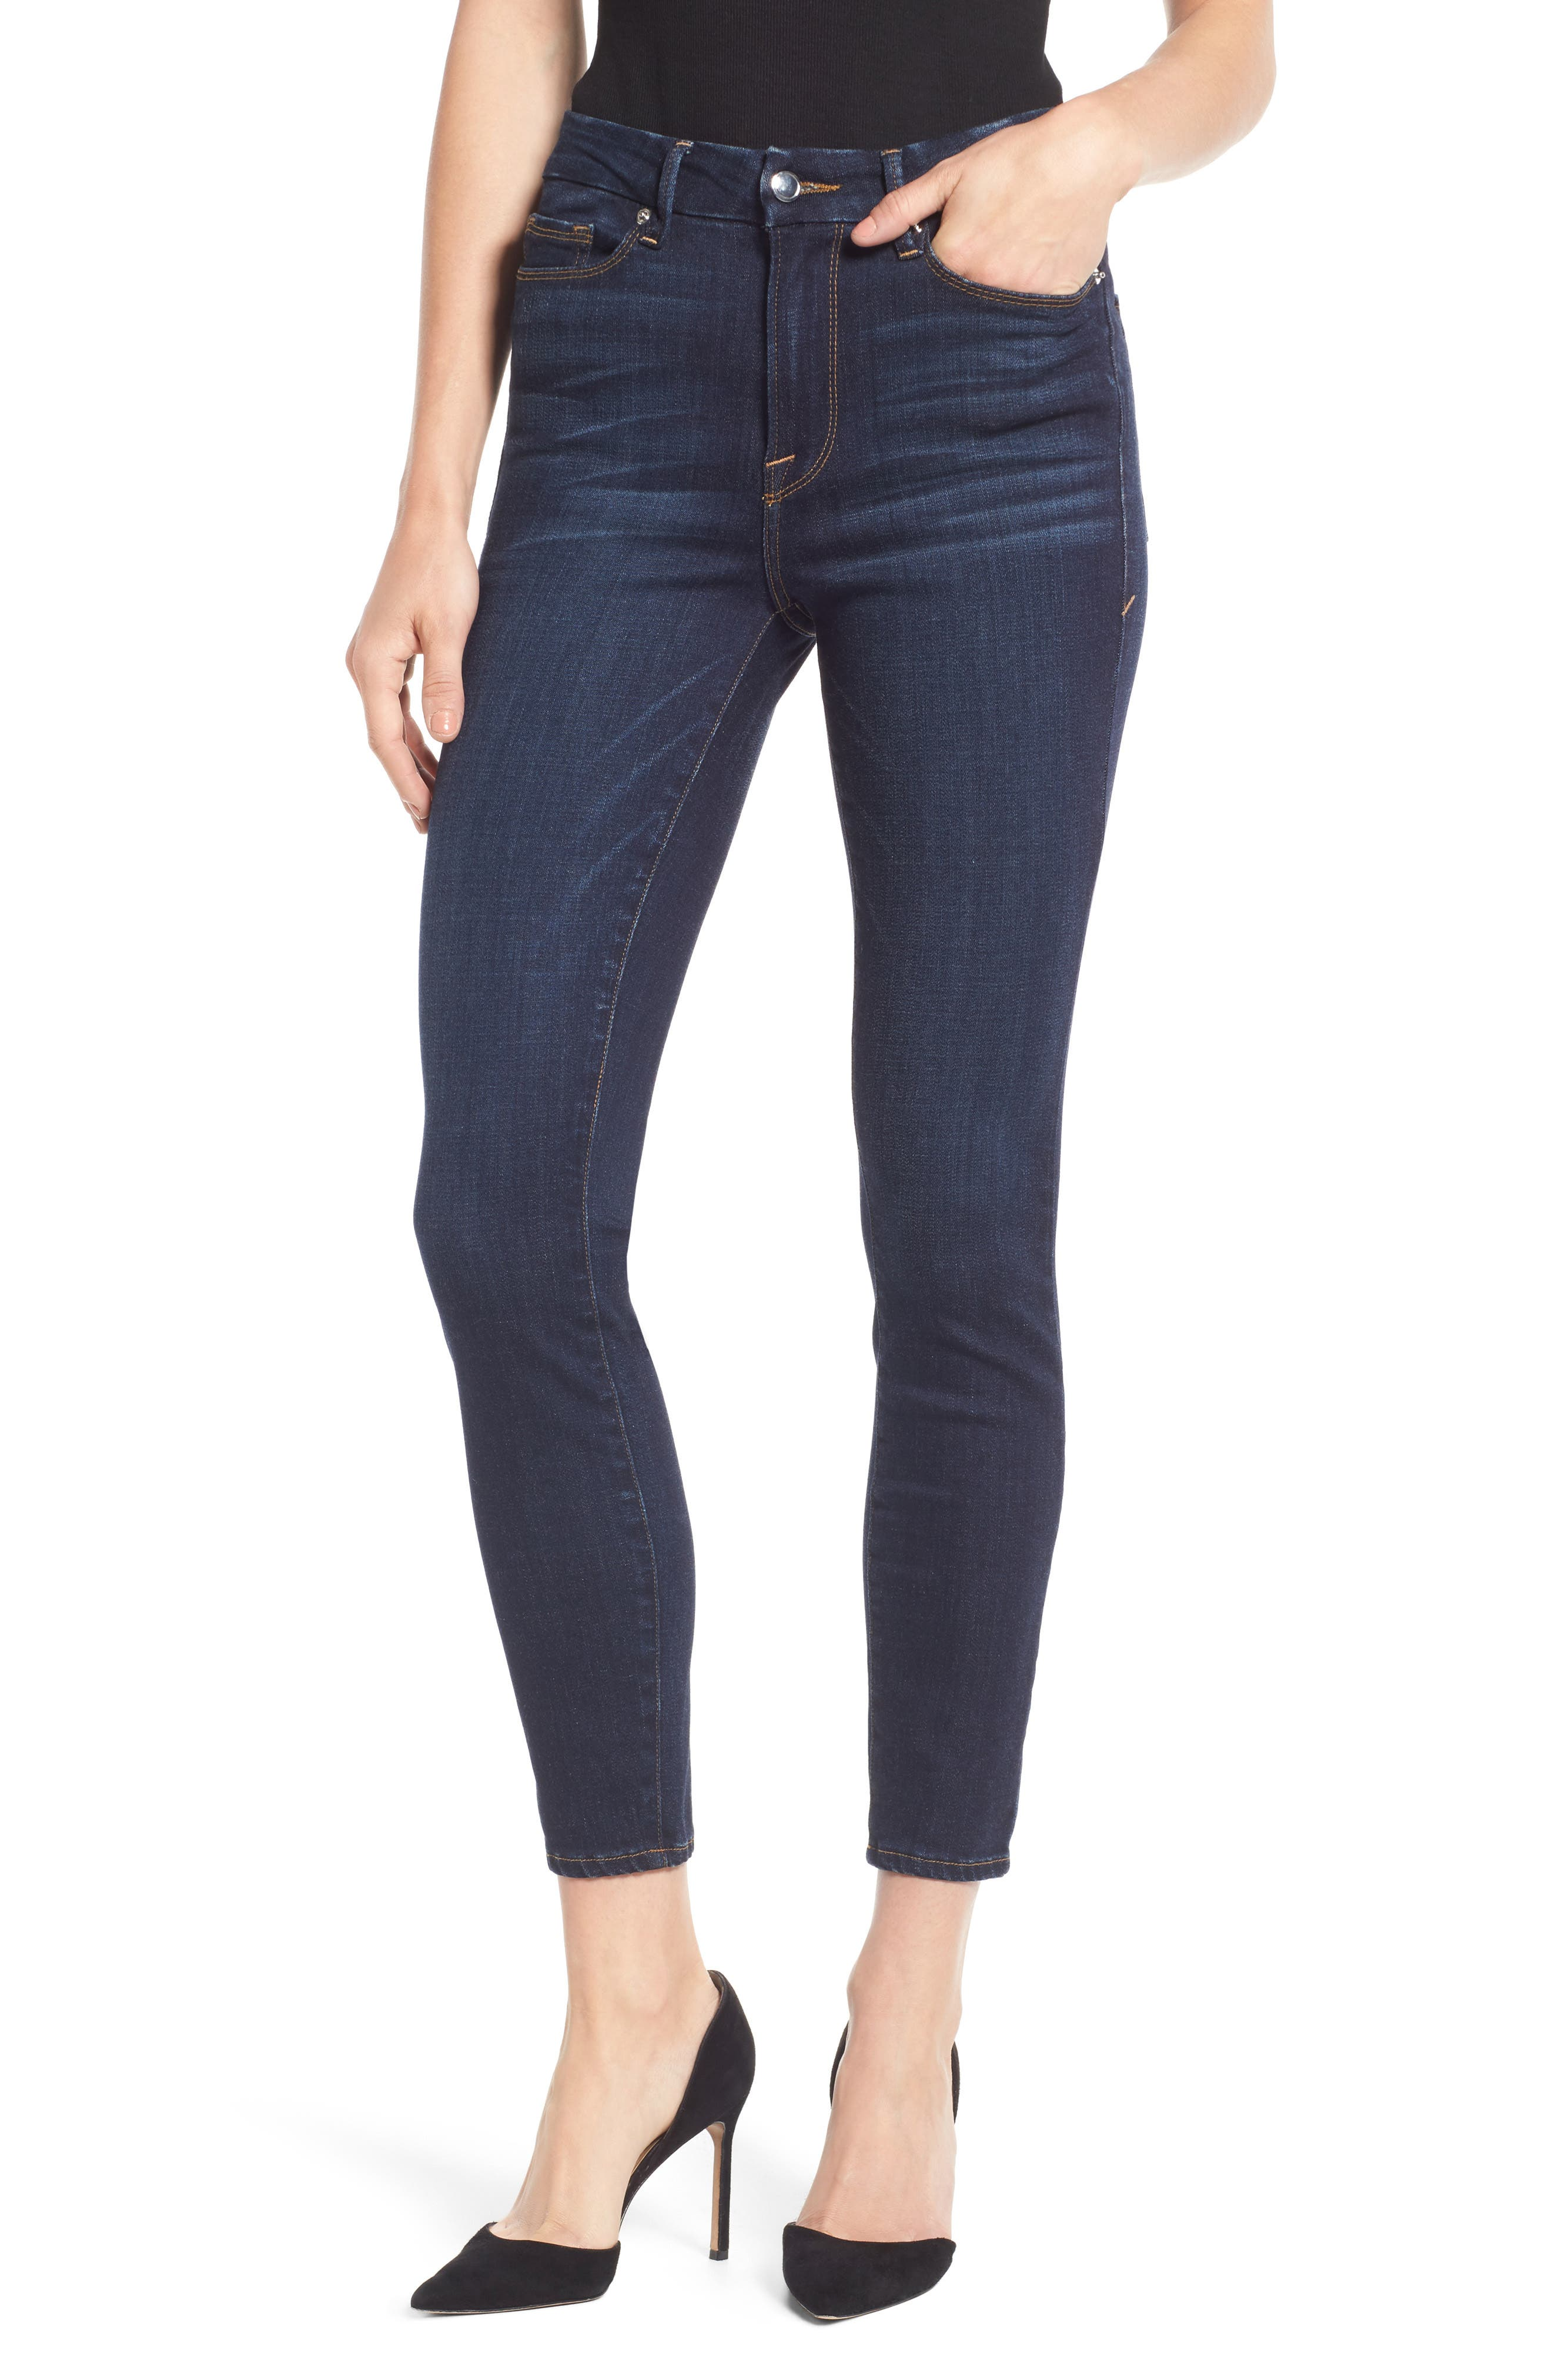 Main Image - Good American Good Legs High Waist Ankle Skinny Jeans (Extended Sizes)